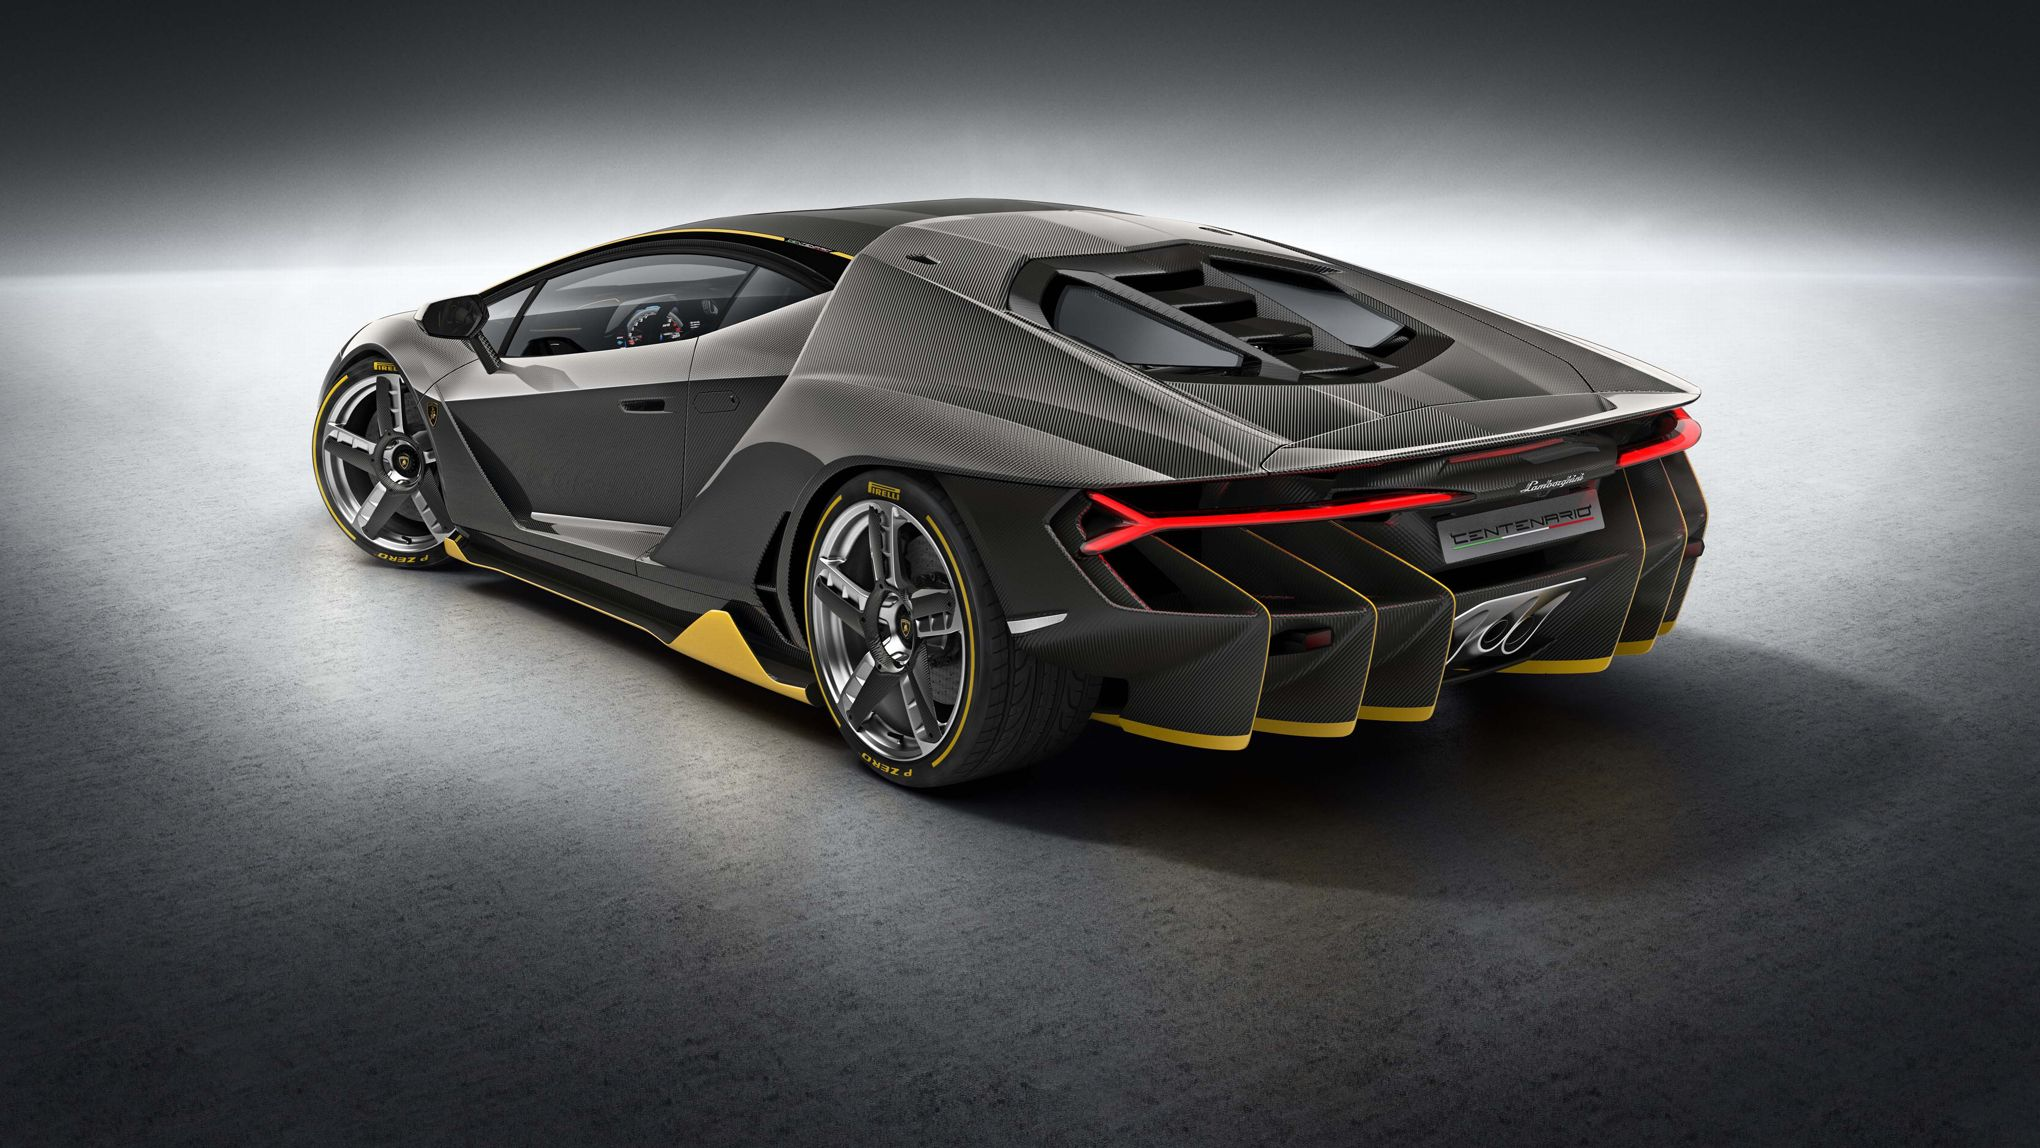 Lamborghini Centenario Le Grand Mechant Look